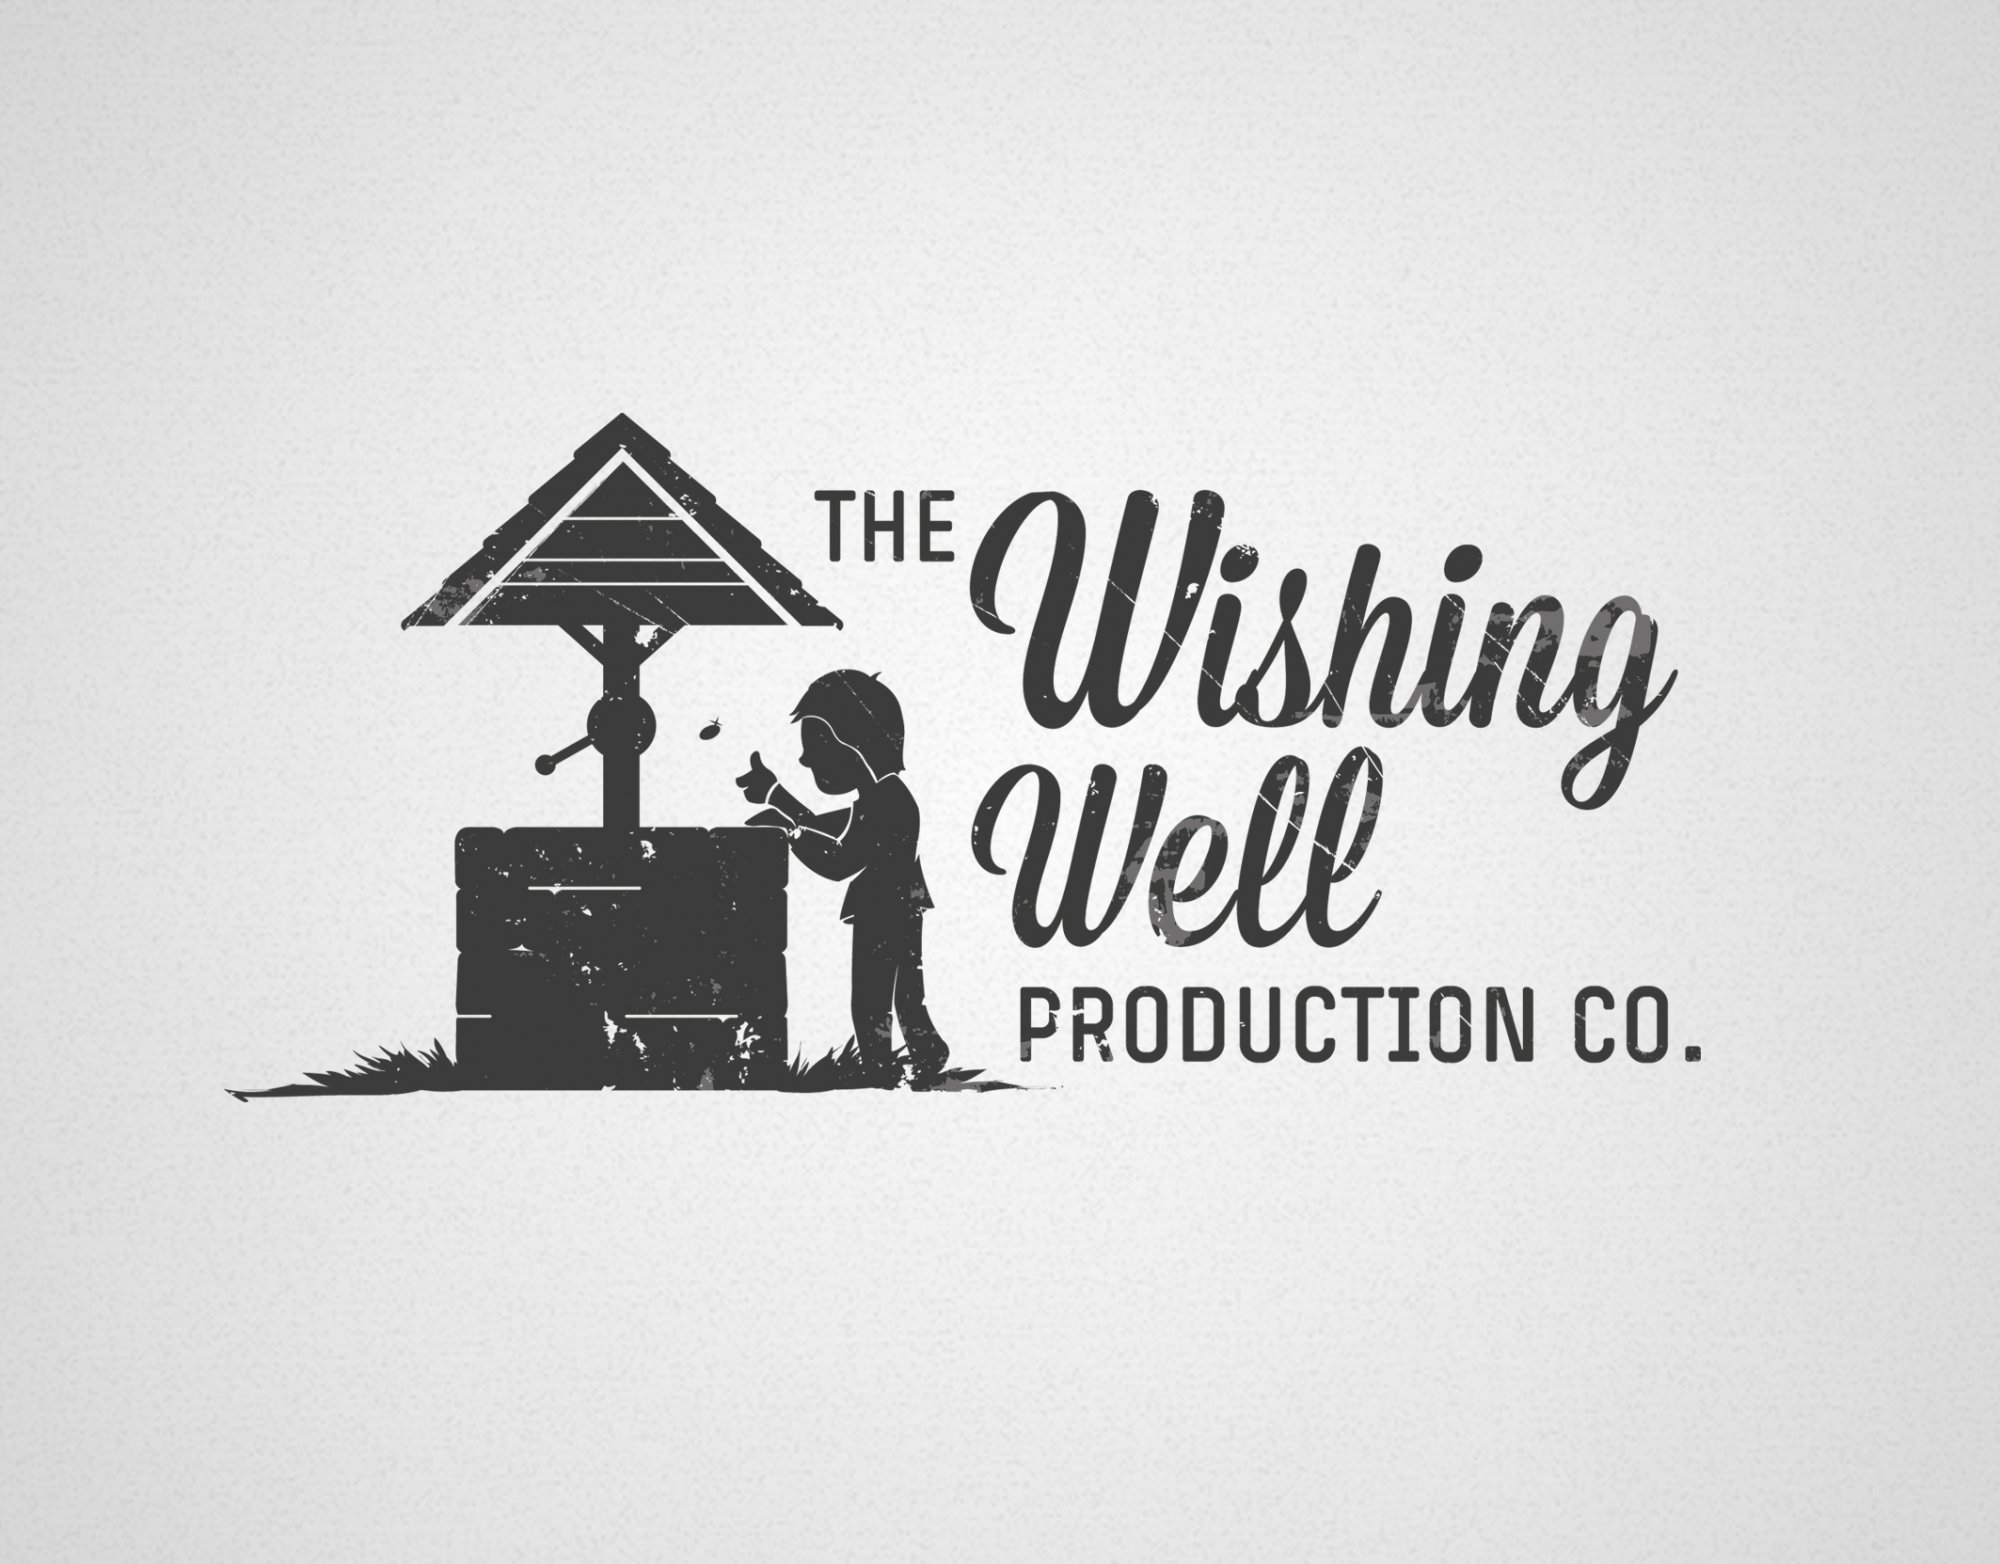 2000x1564 Wishing Well Brands Of The Download Vector Logos And